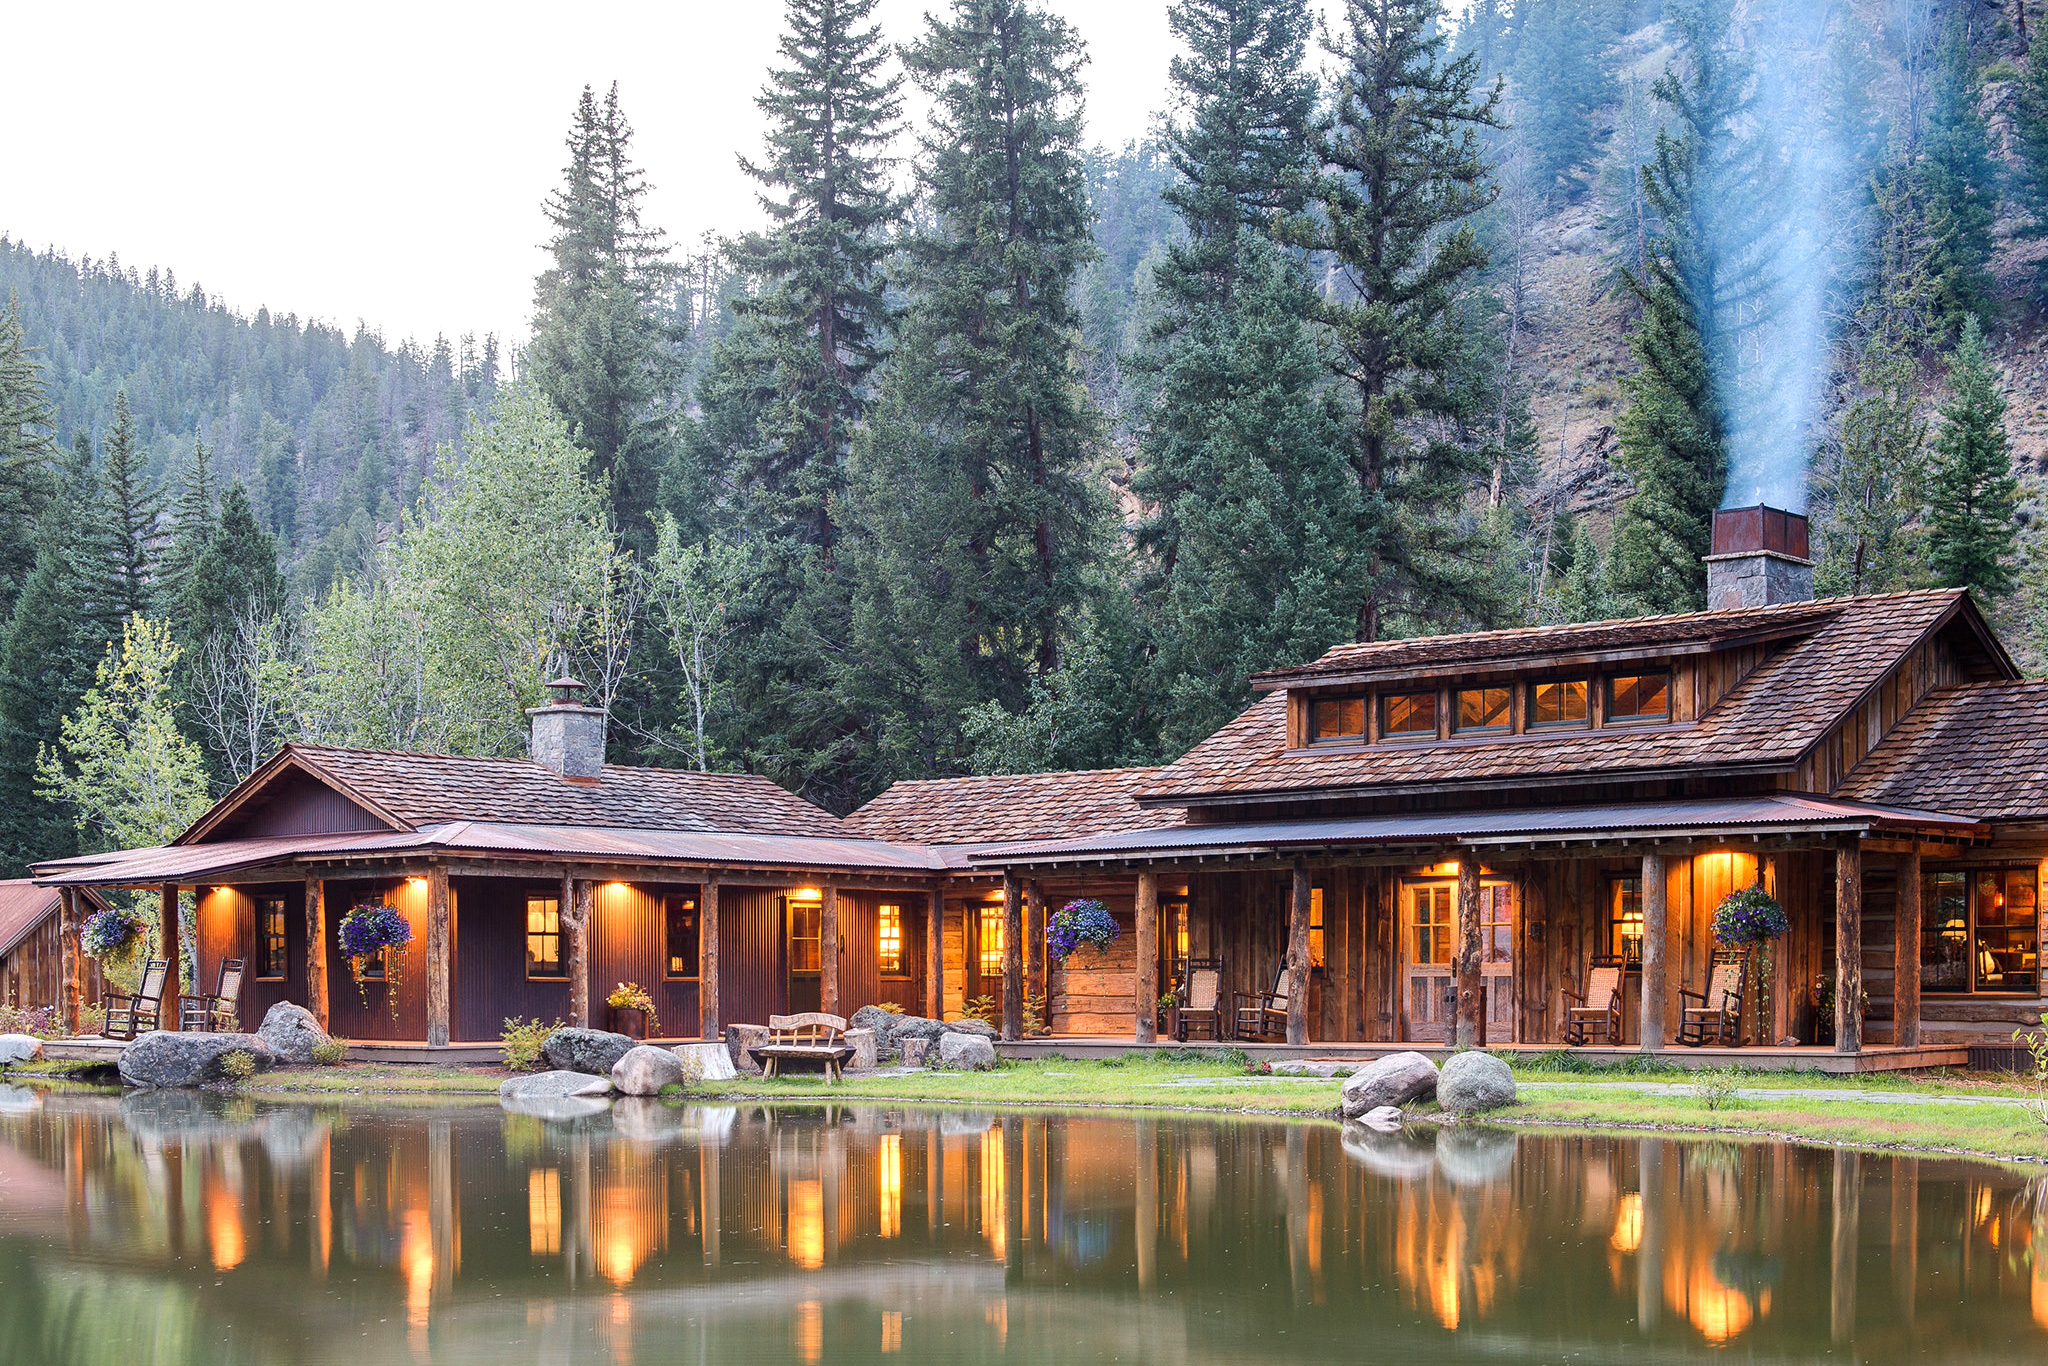 This image may contain Tree, Plant, Building, Fir, Abies, Housing, Resort, and Hotel